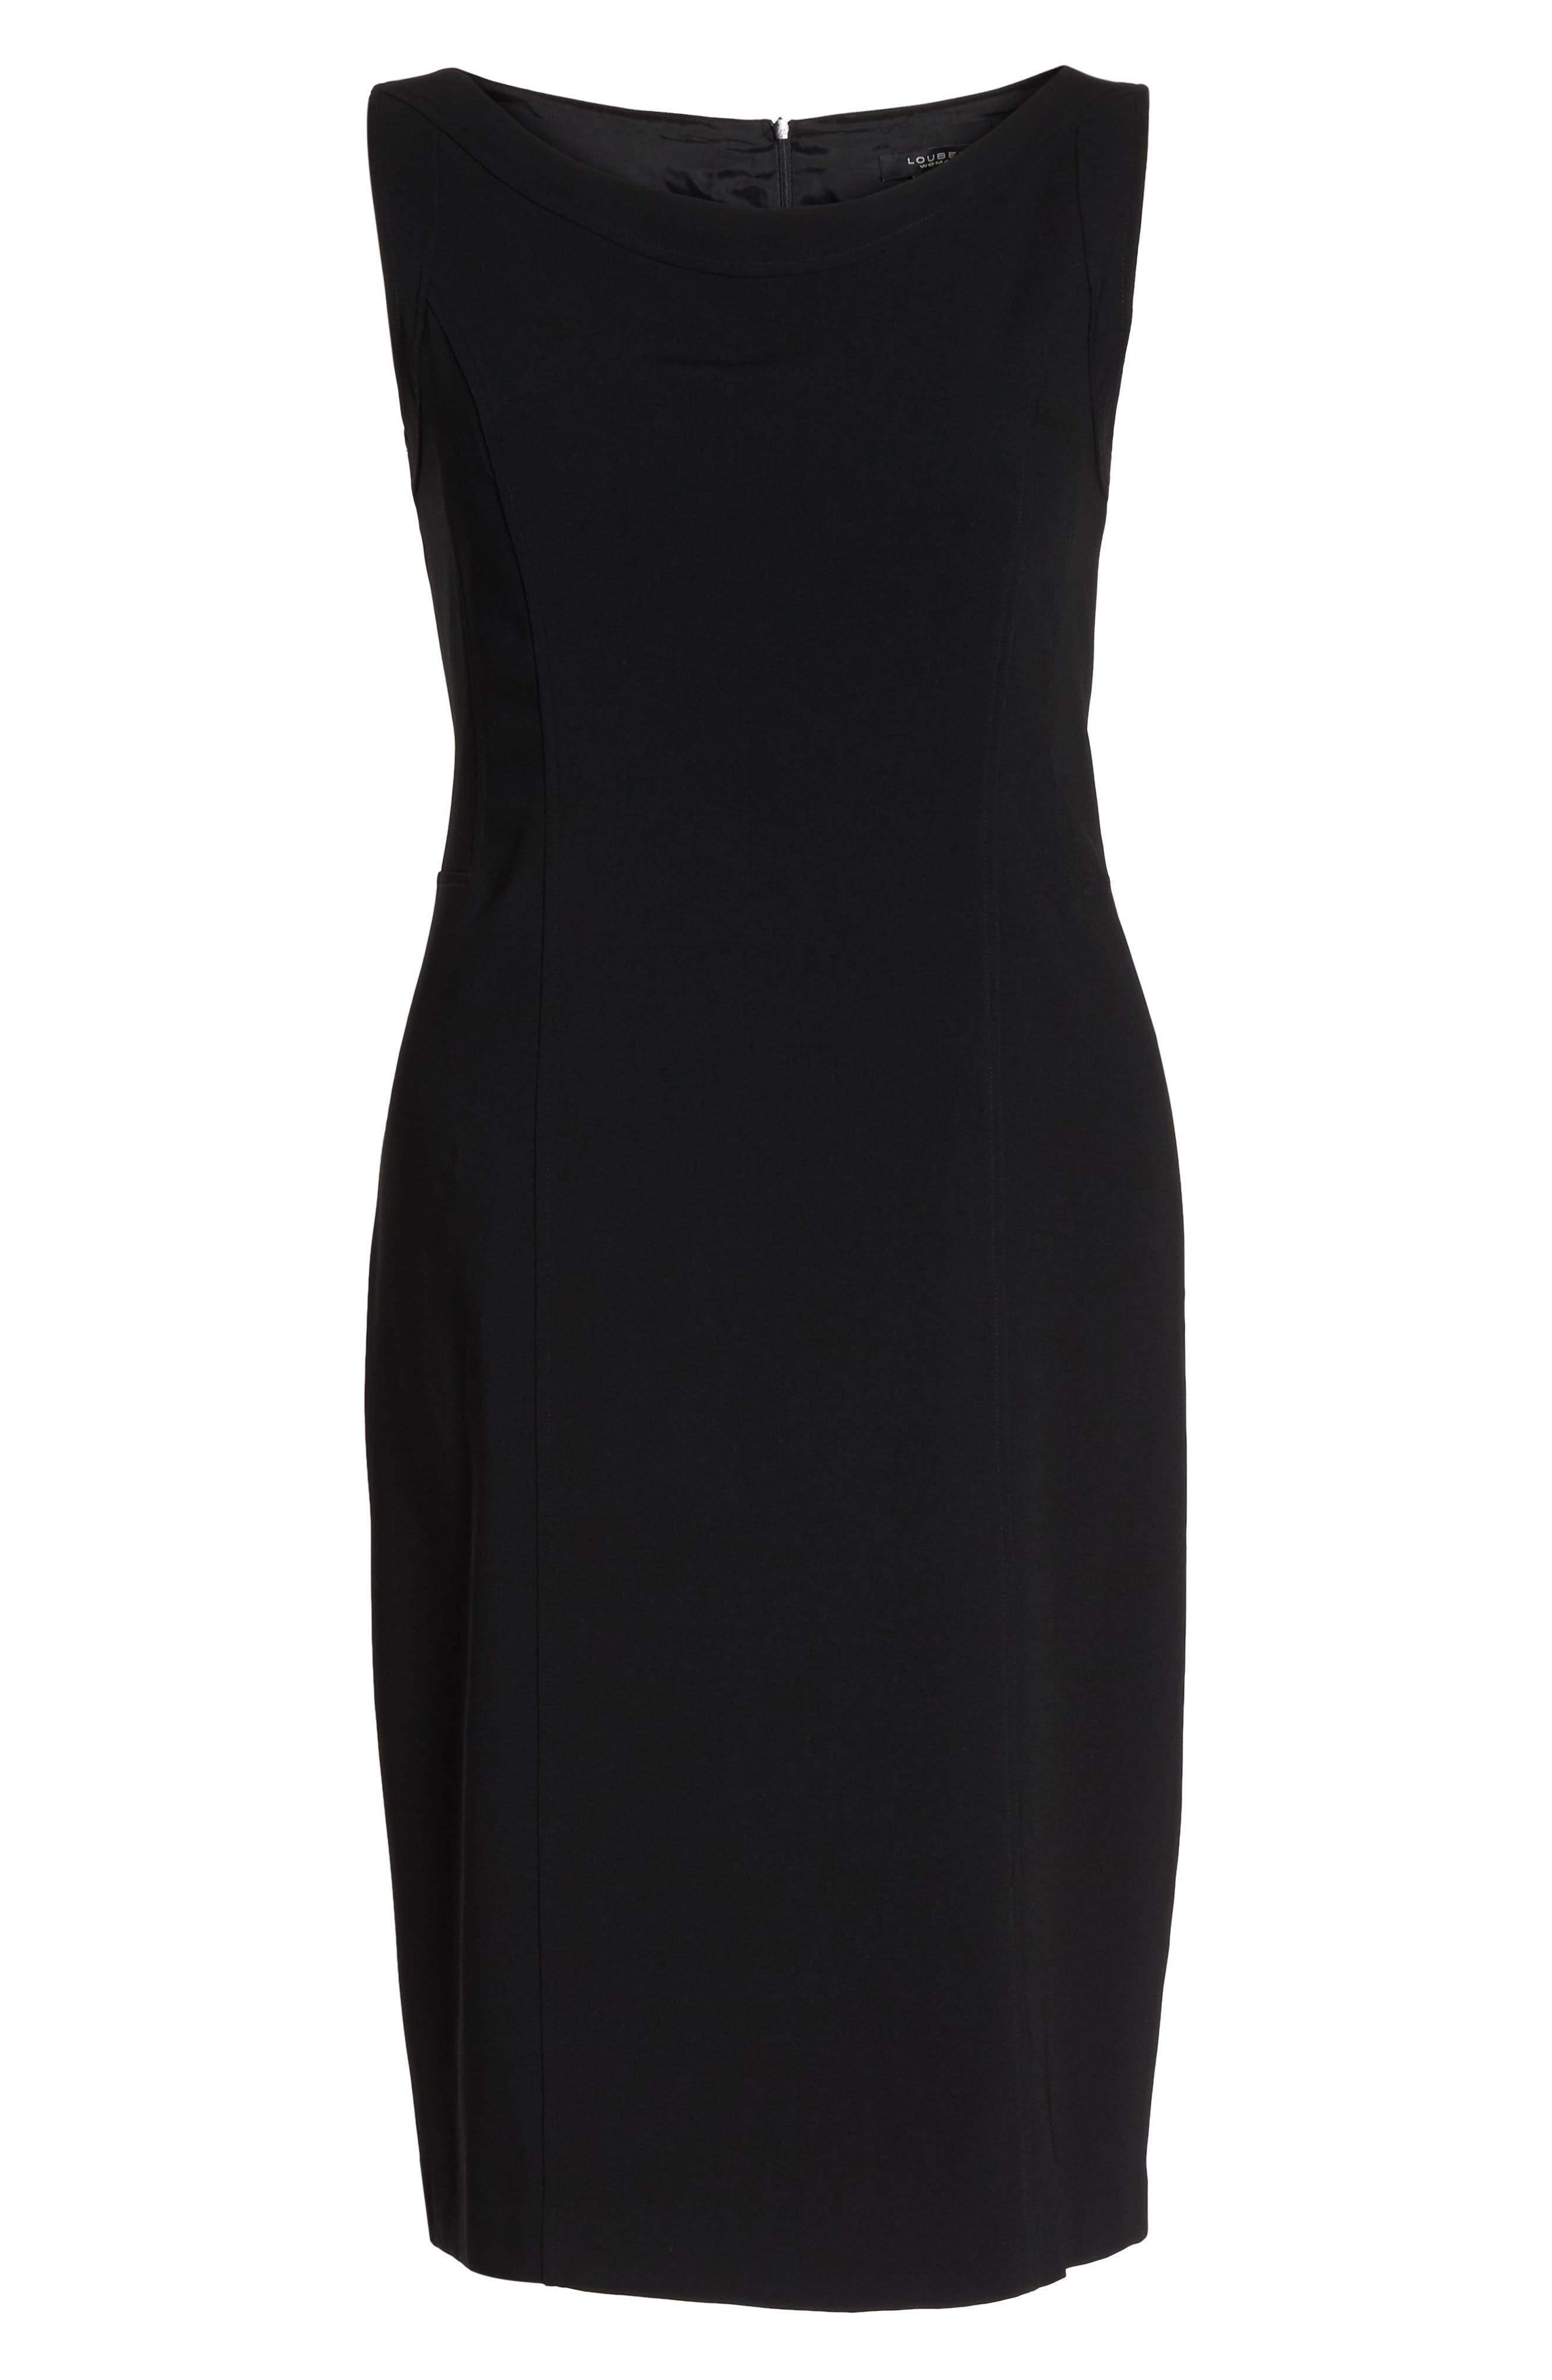 LOUBEN, Sleeveless Suiting Sheath Dress, Alternate thumbnail 4, color, BLACK